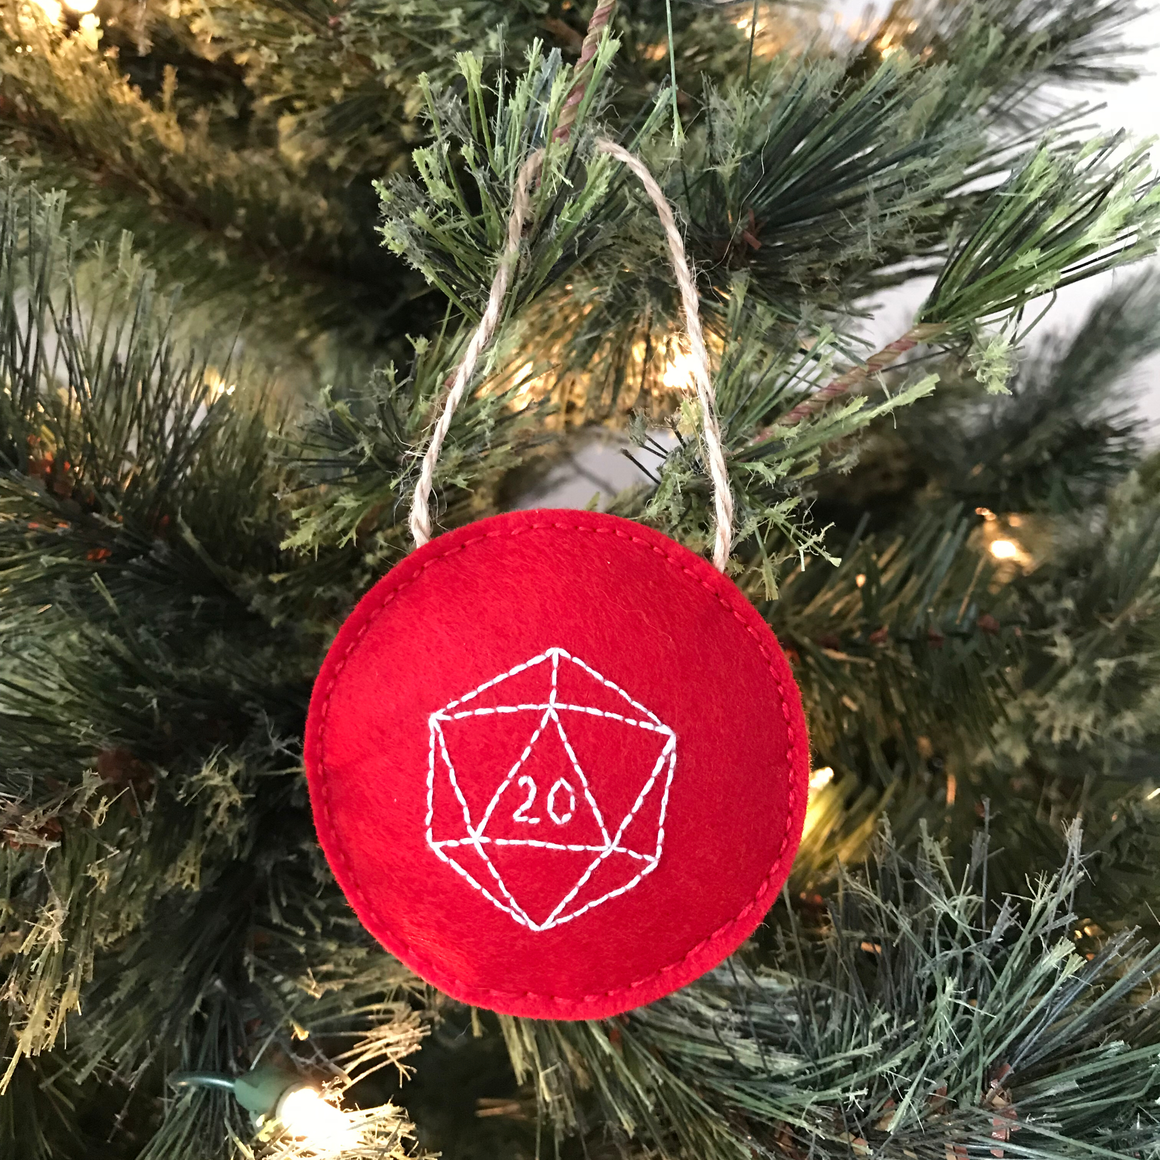 D20 Gaming Wool Felt Christmas Ornament